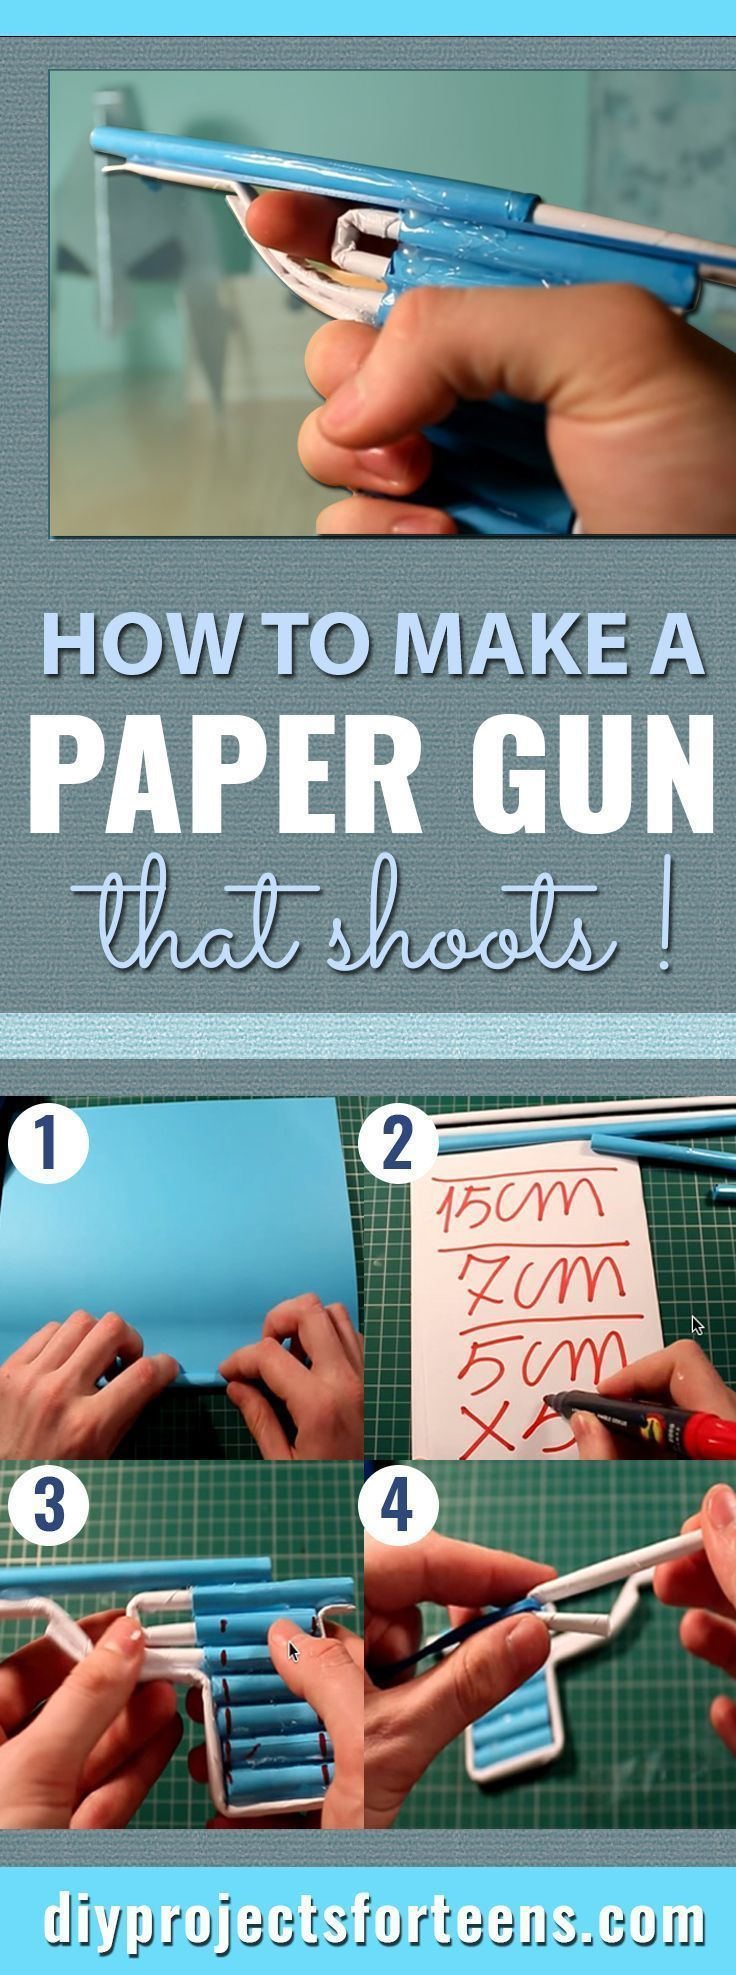 How To Make A Paper Gun That Shoots DIY Projects For Teens Home Decors